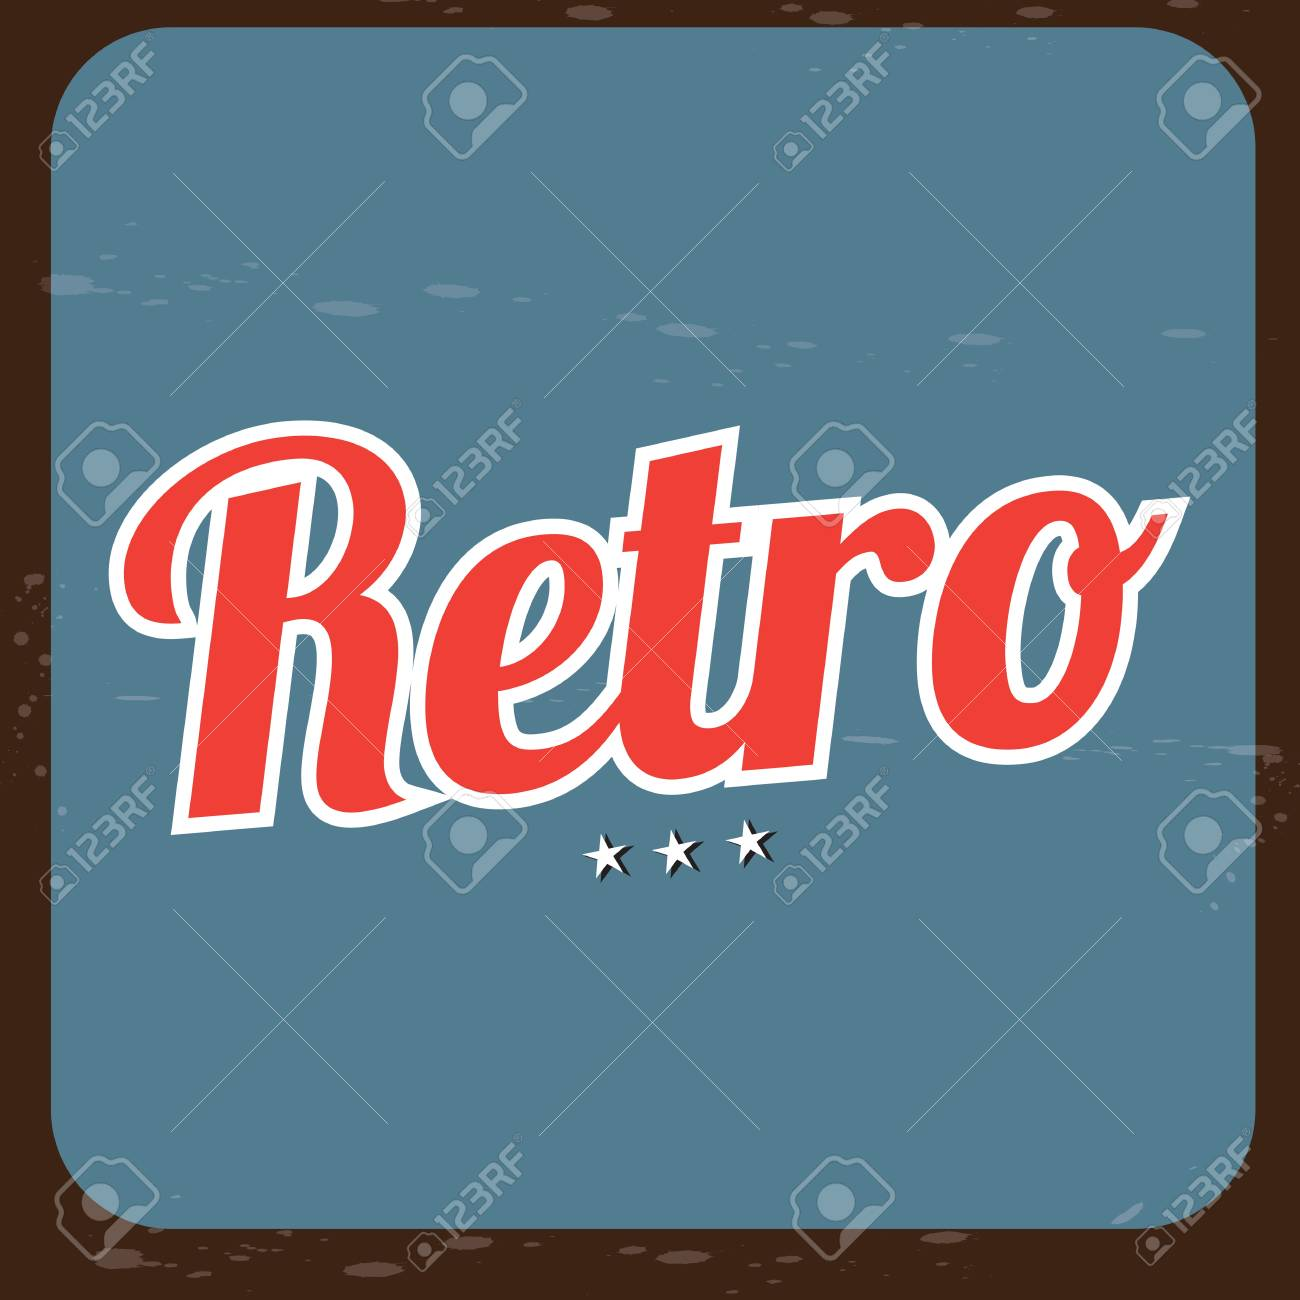 Retro label over blue and brown background illustration Stock Vector - 19306079